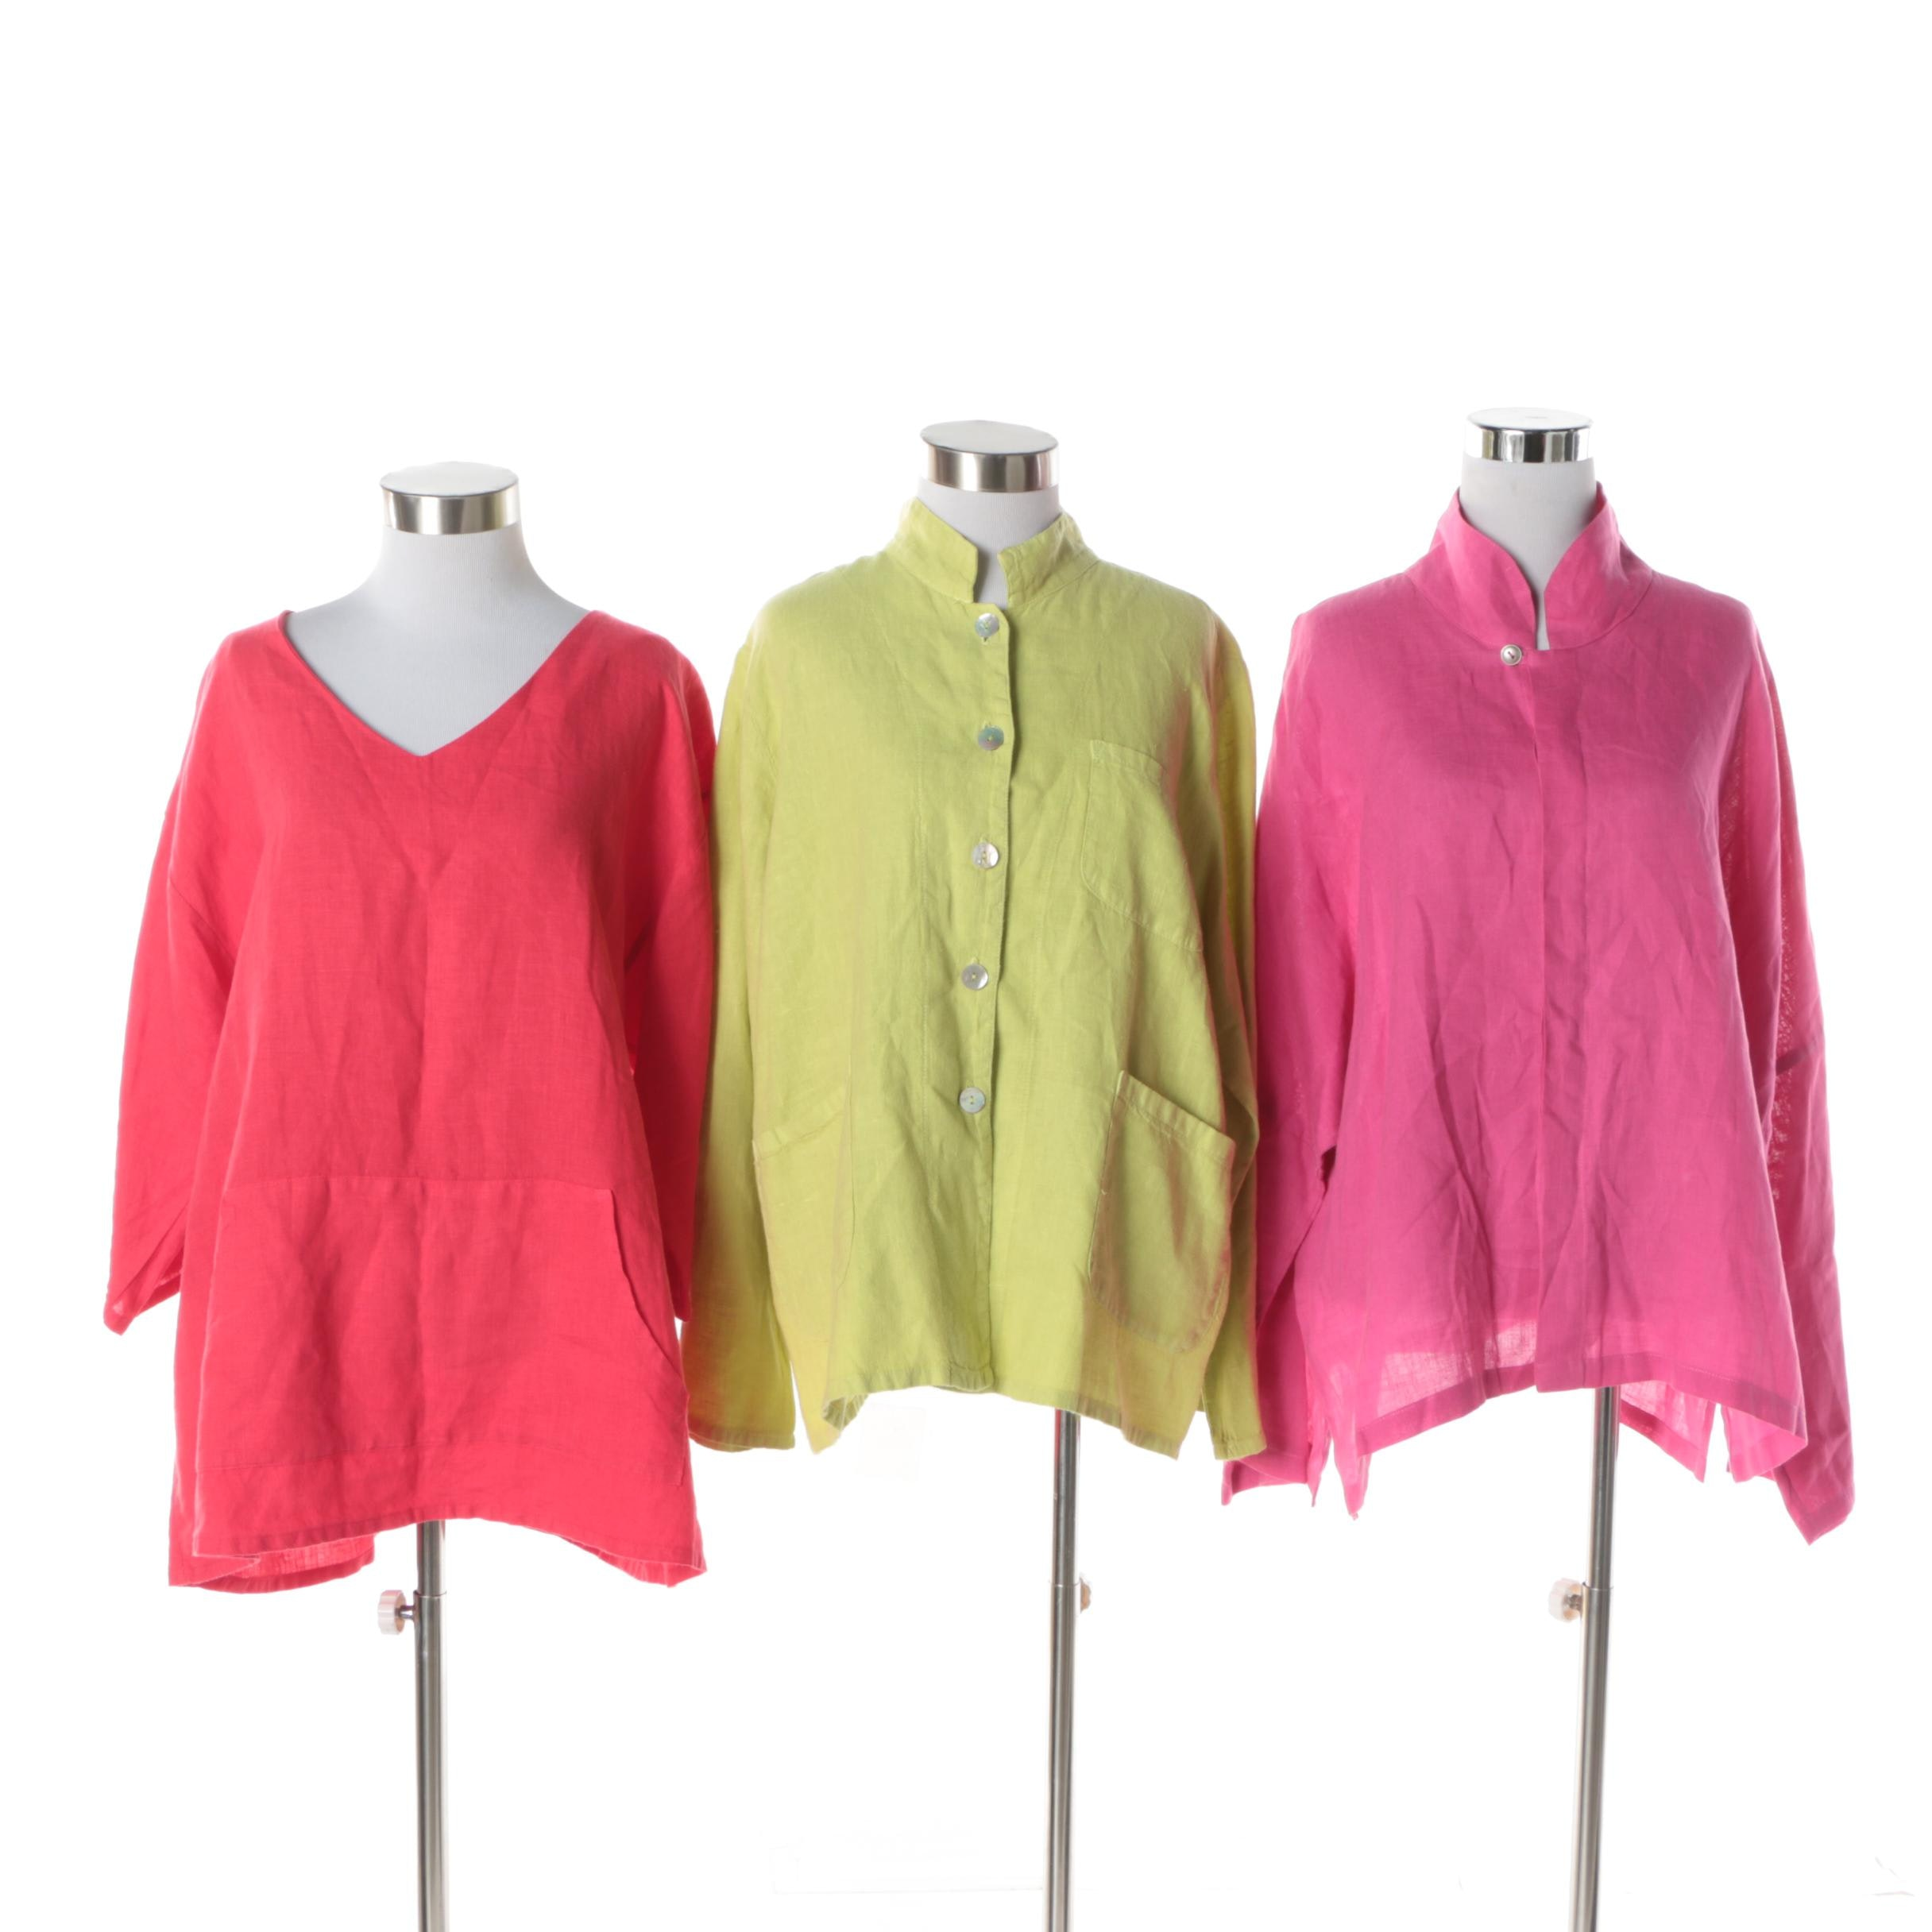 Women's Linen Tops Including Bryn Walker and Match Point